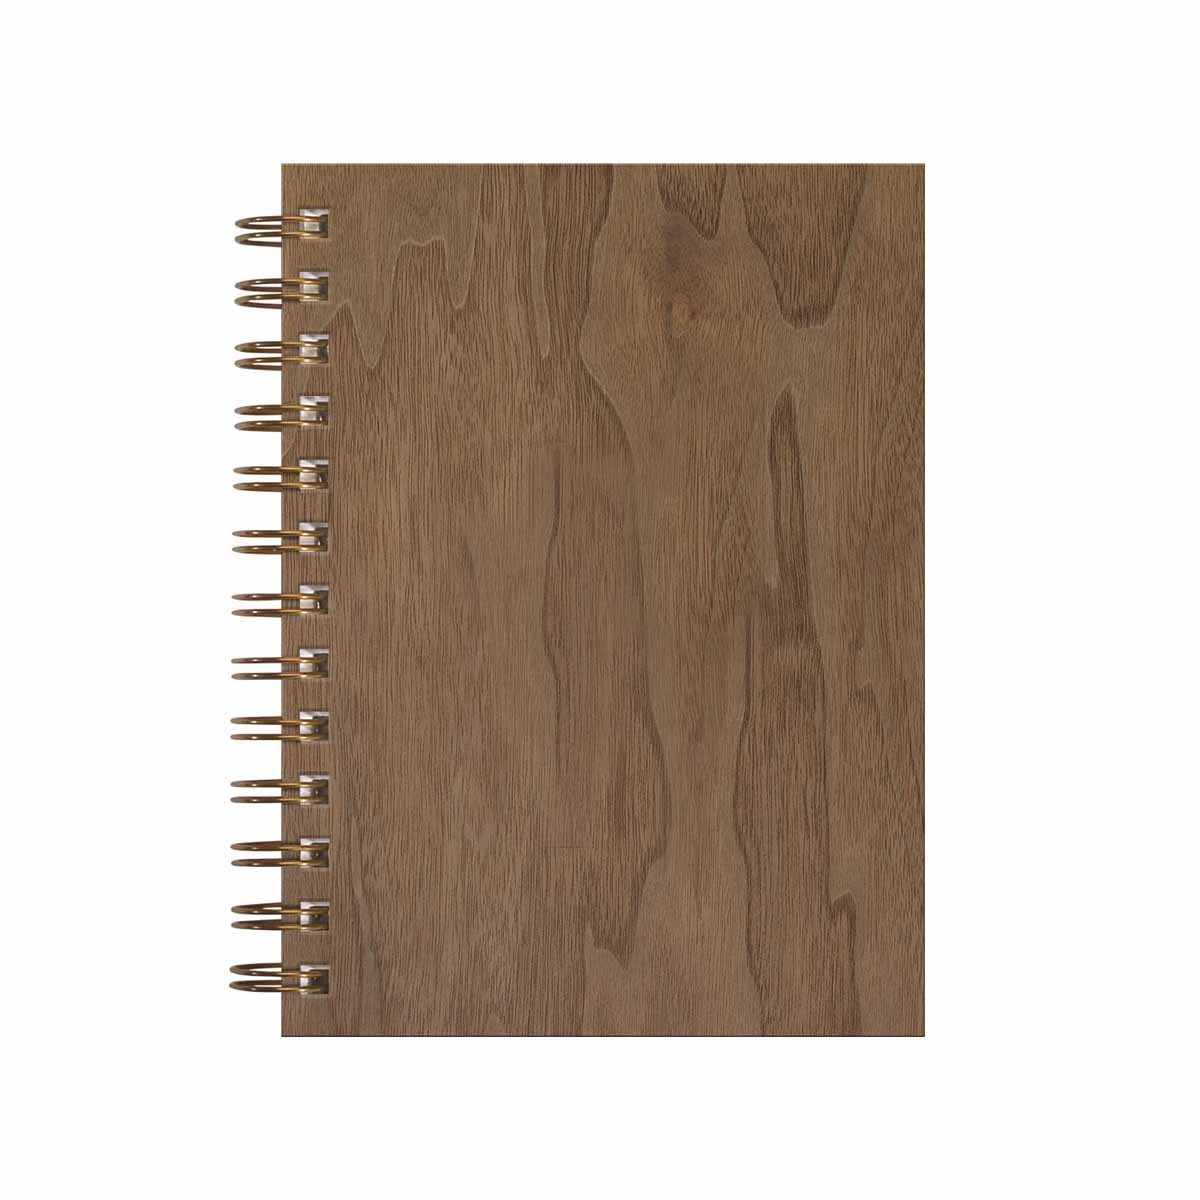 Wood journal walnut